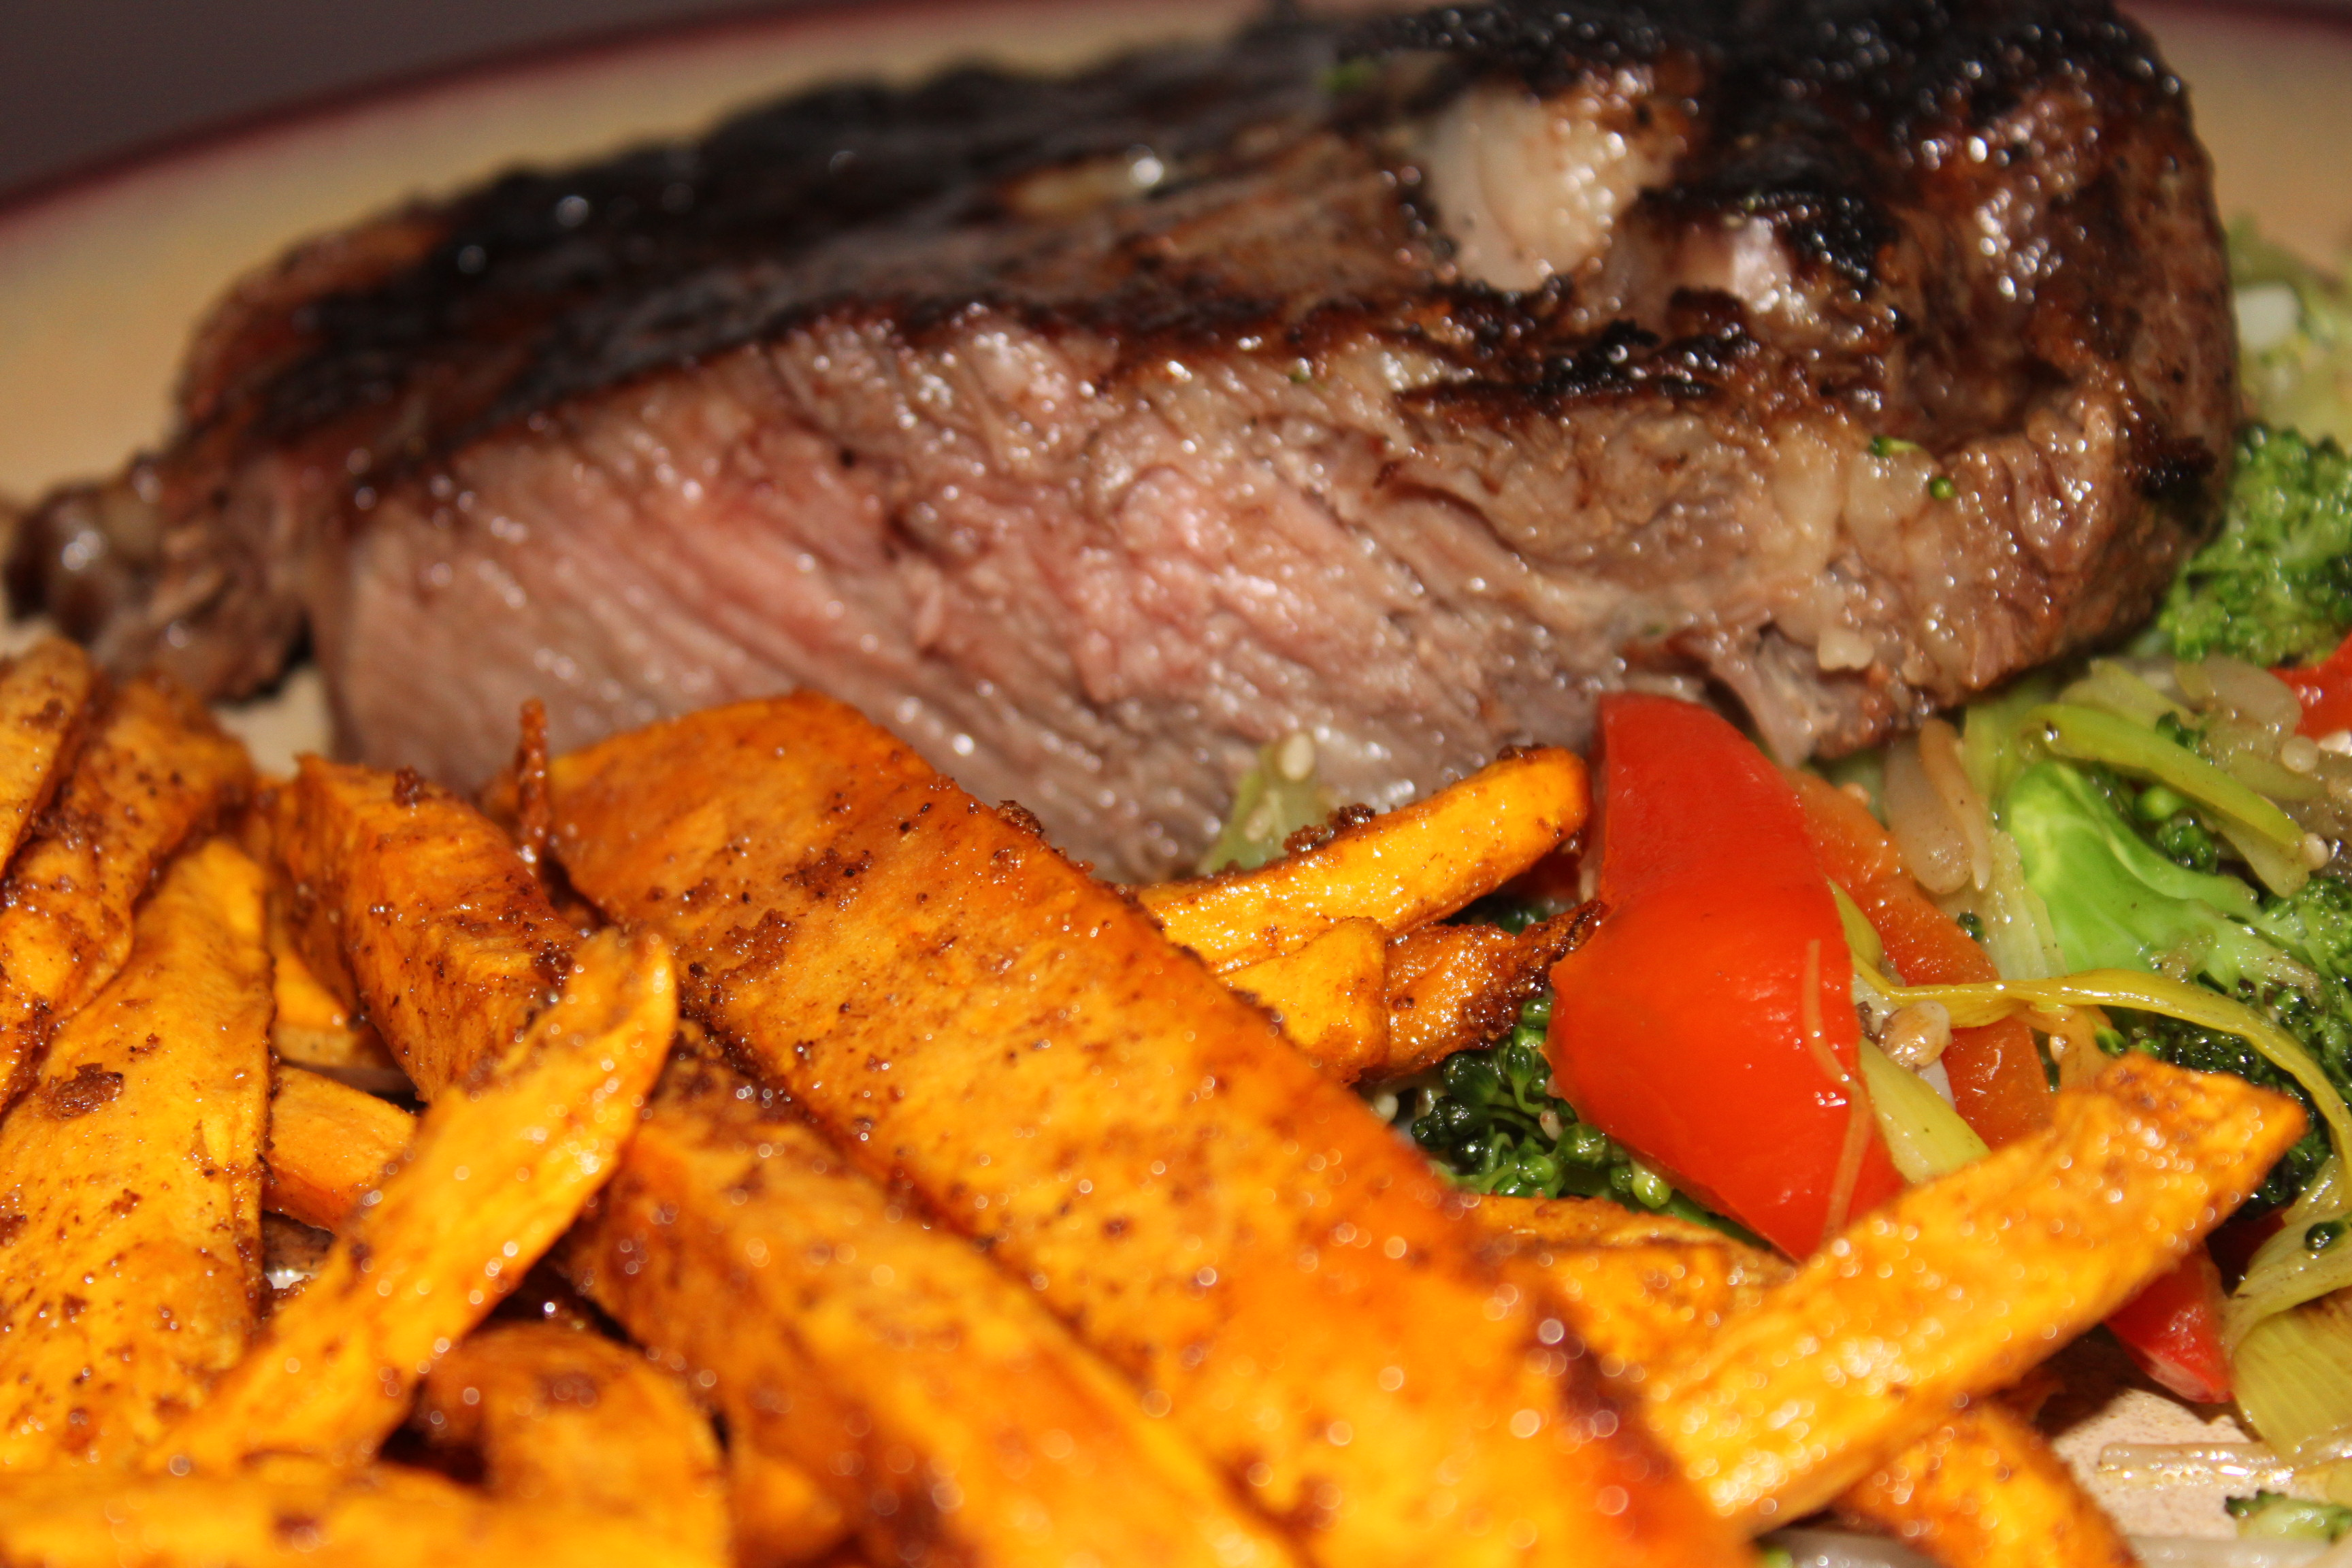 The Last Supper – Ribeye Steak with Sweet Potao Fries and a Vegetable Stir-Fry Medley